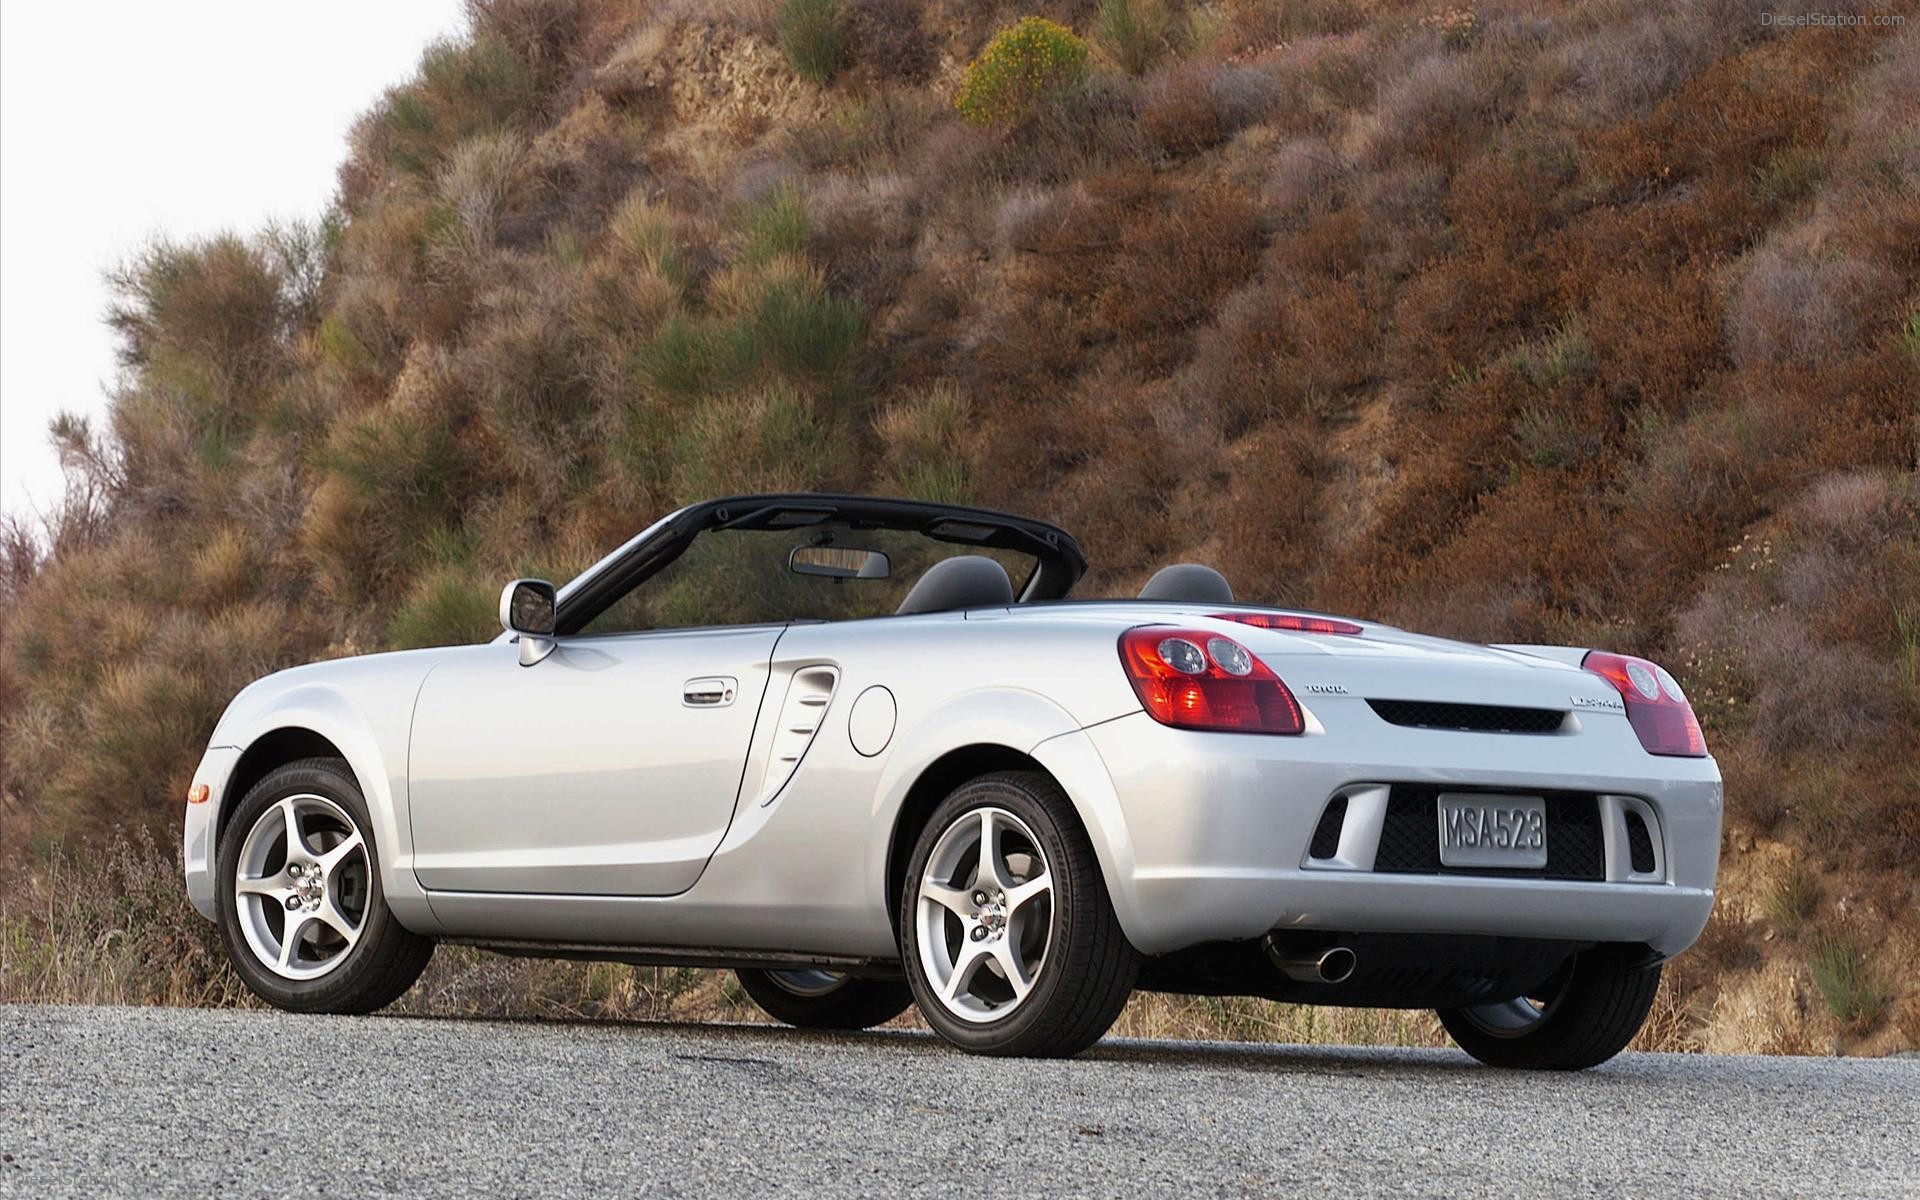 2005 Toyota Mr2 Spyder #6